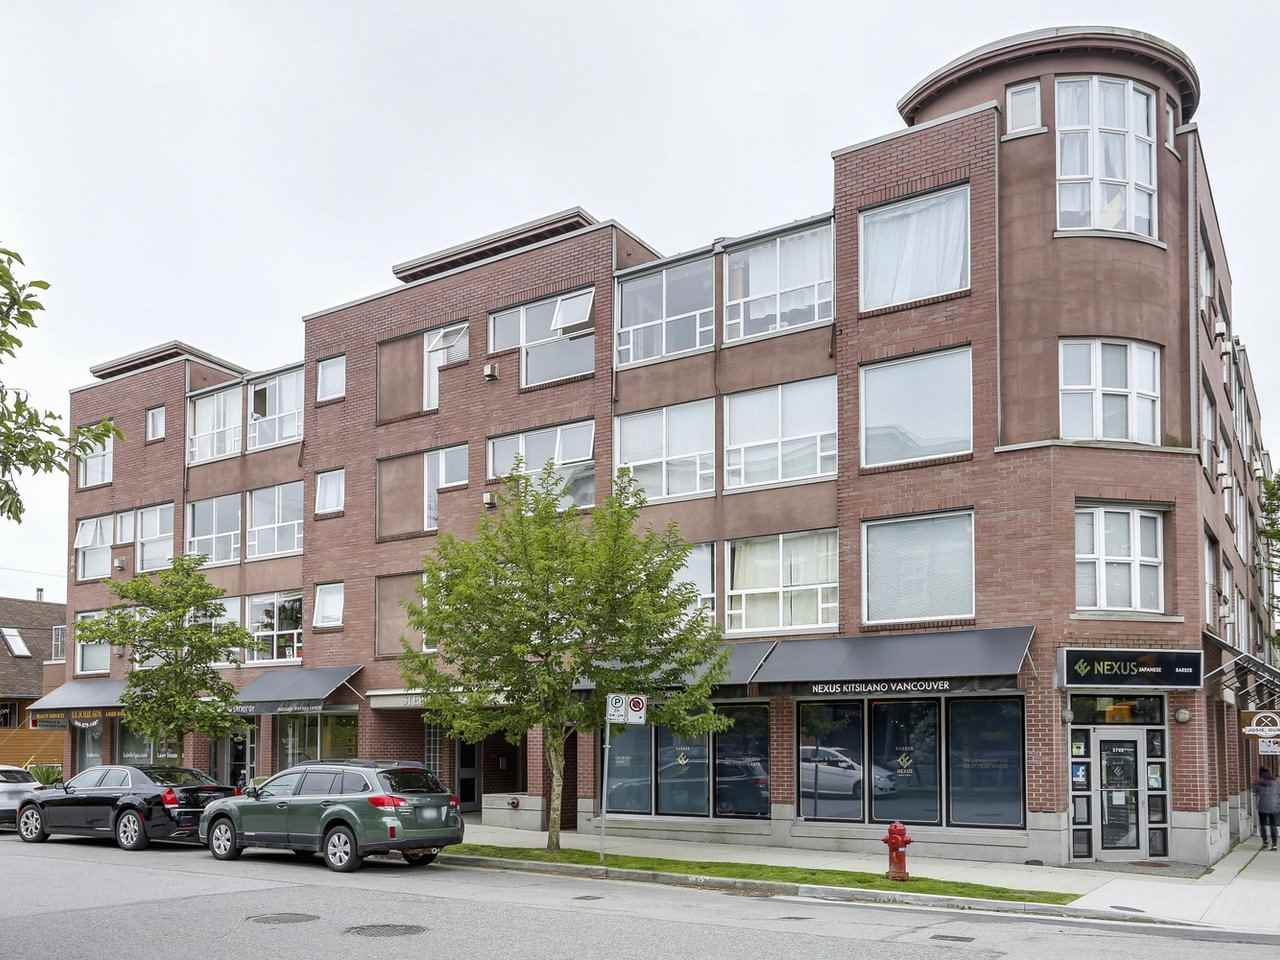 406 2025 STEPHENS STREET, Vancouver